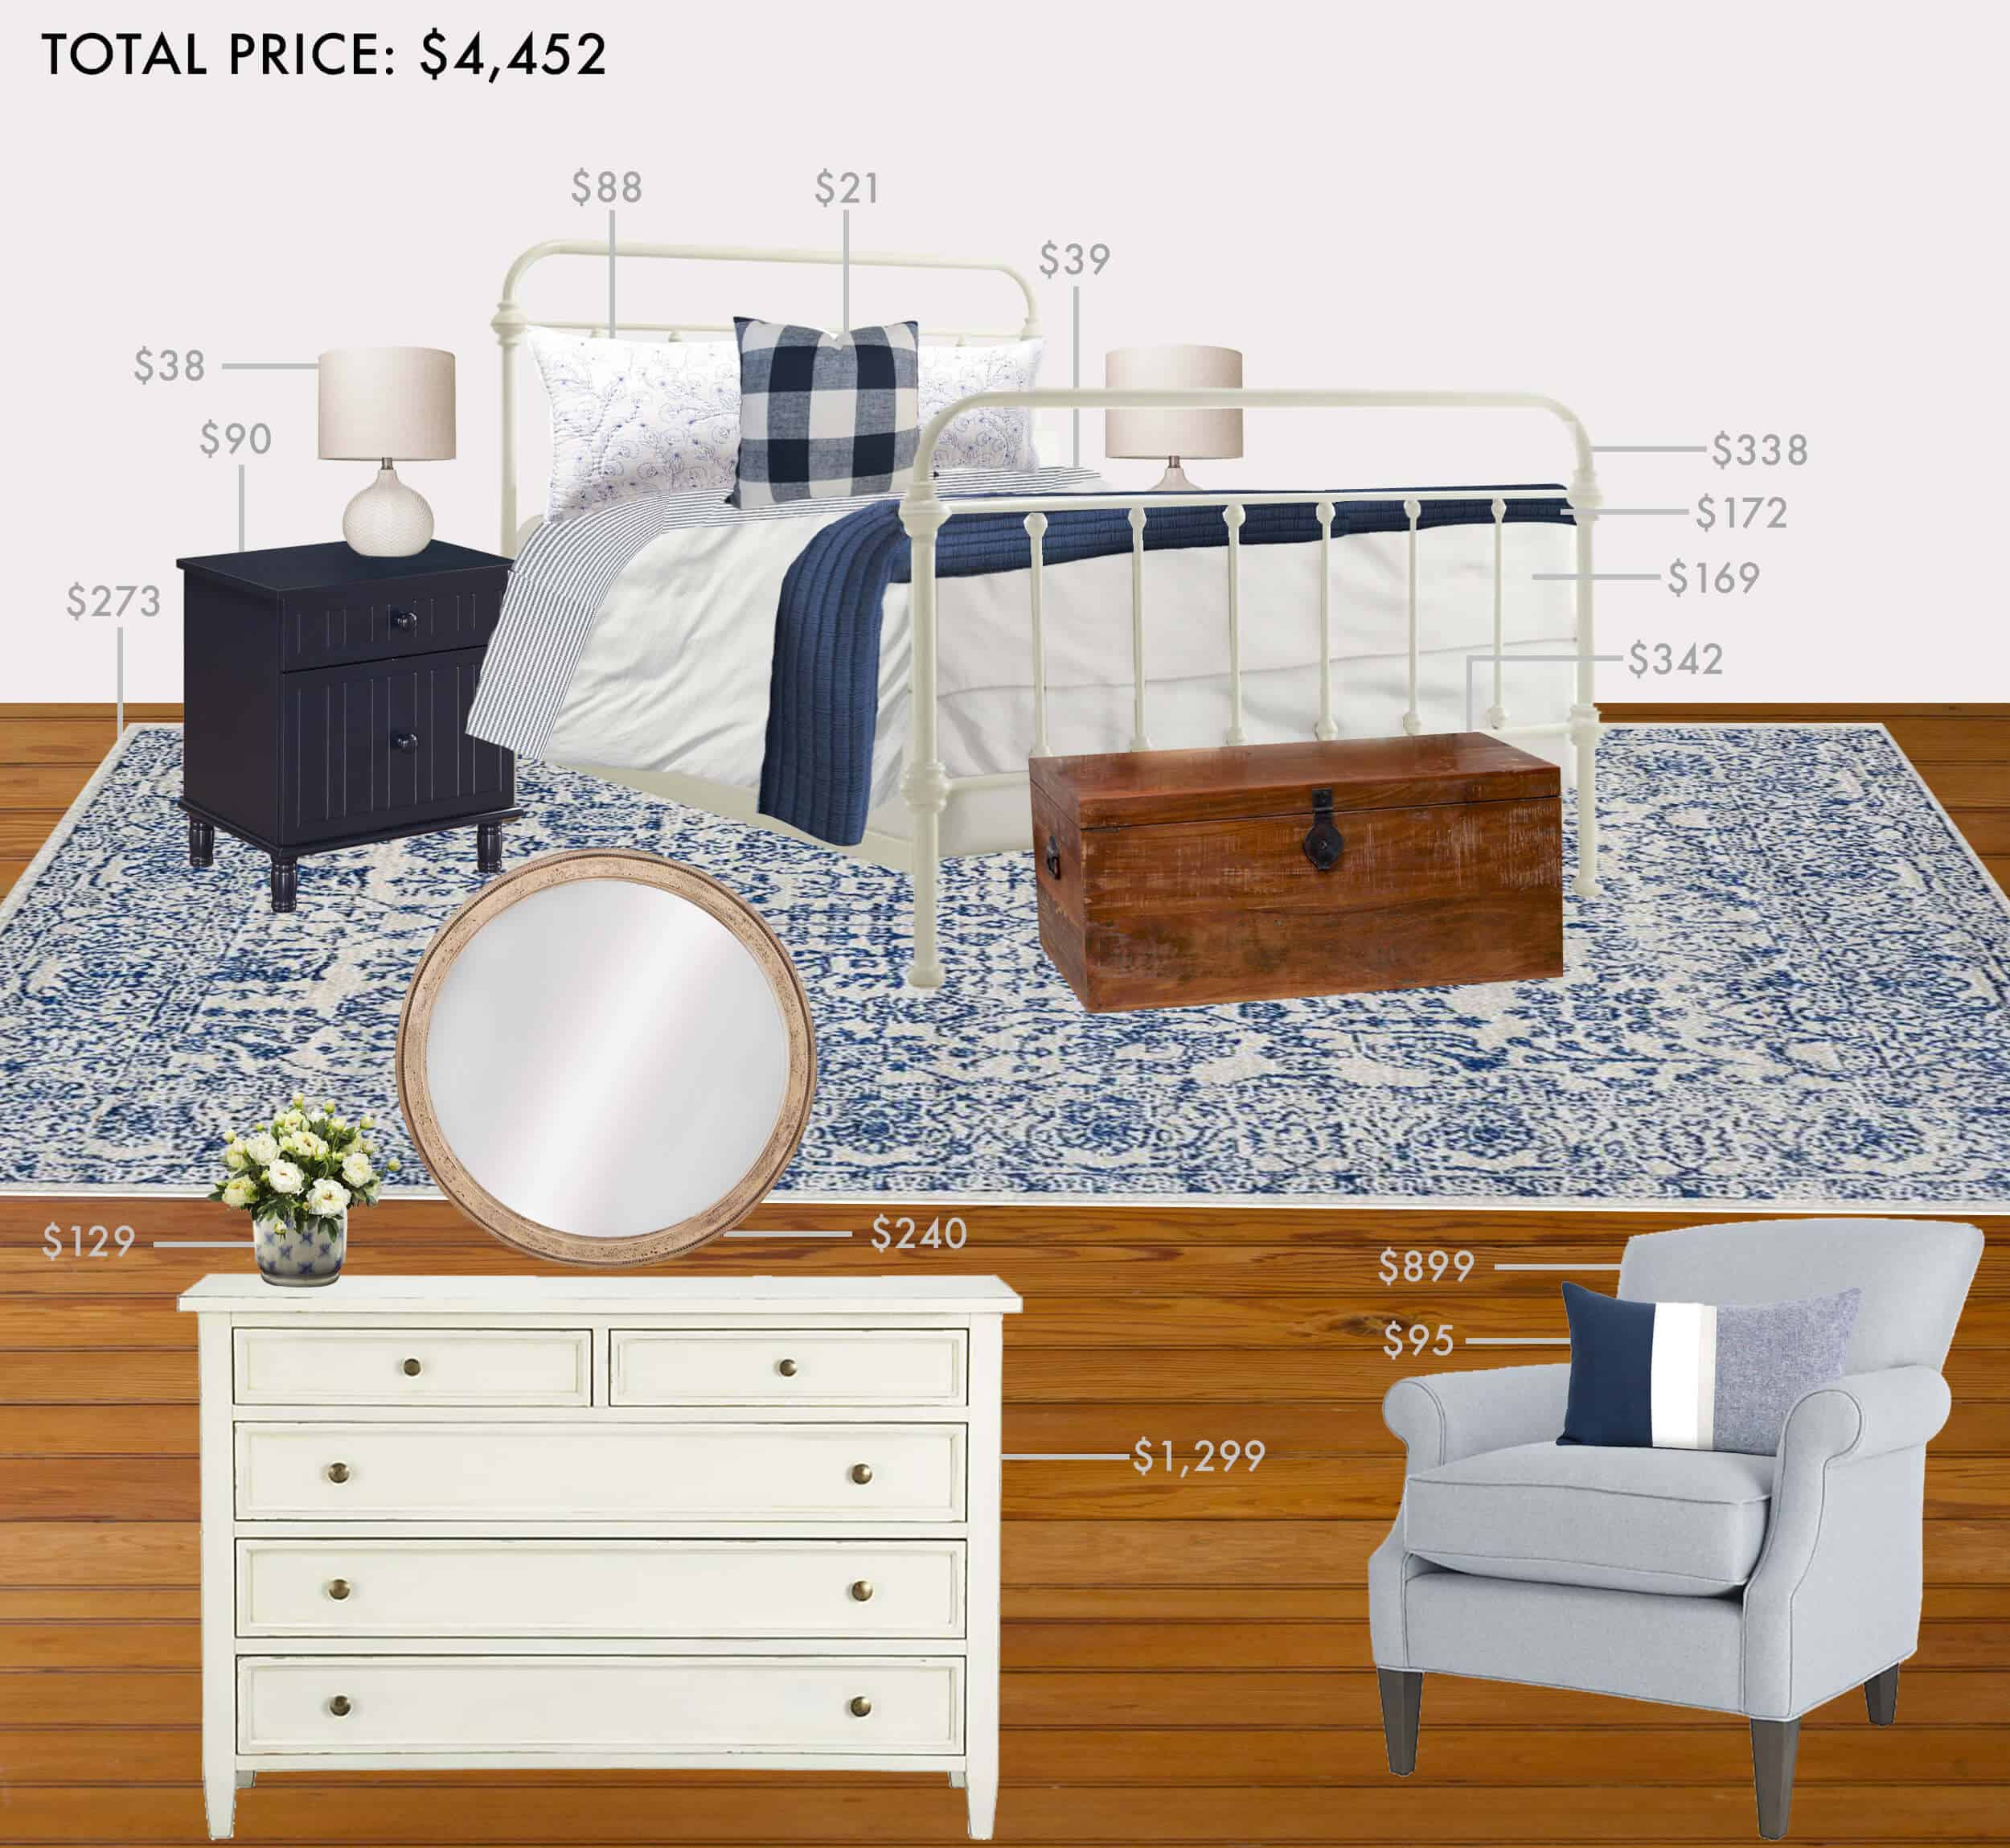 english_cottage_budget_bedroom_under5k